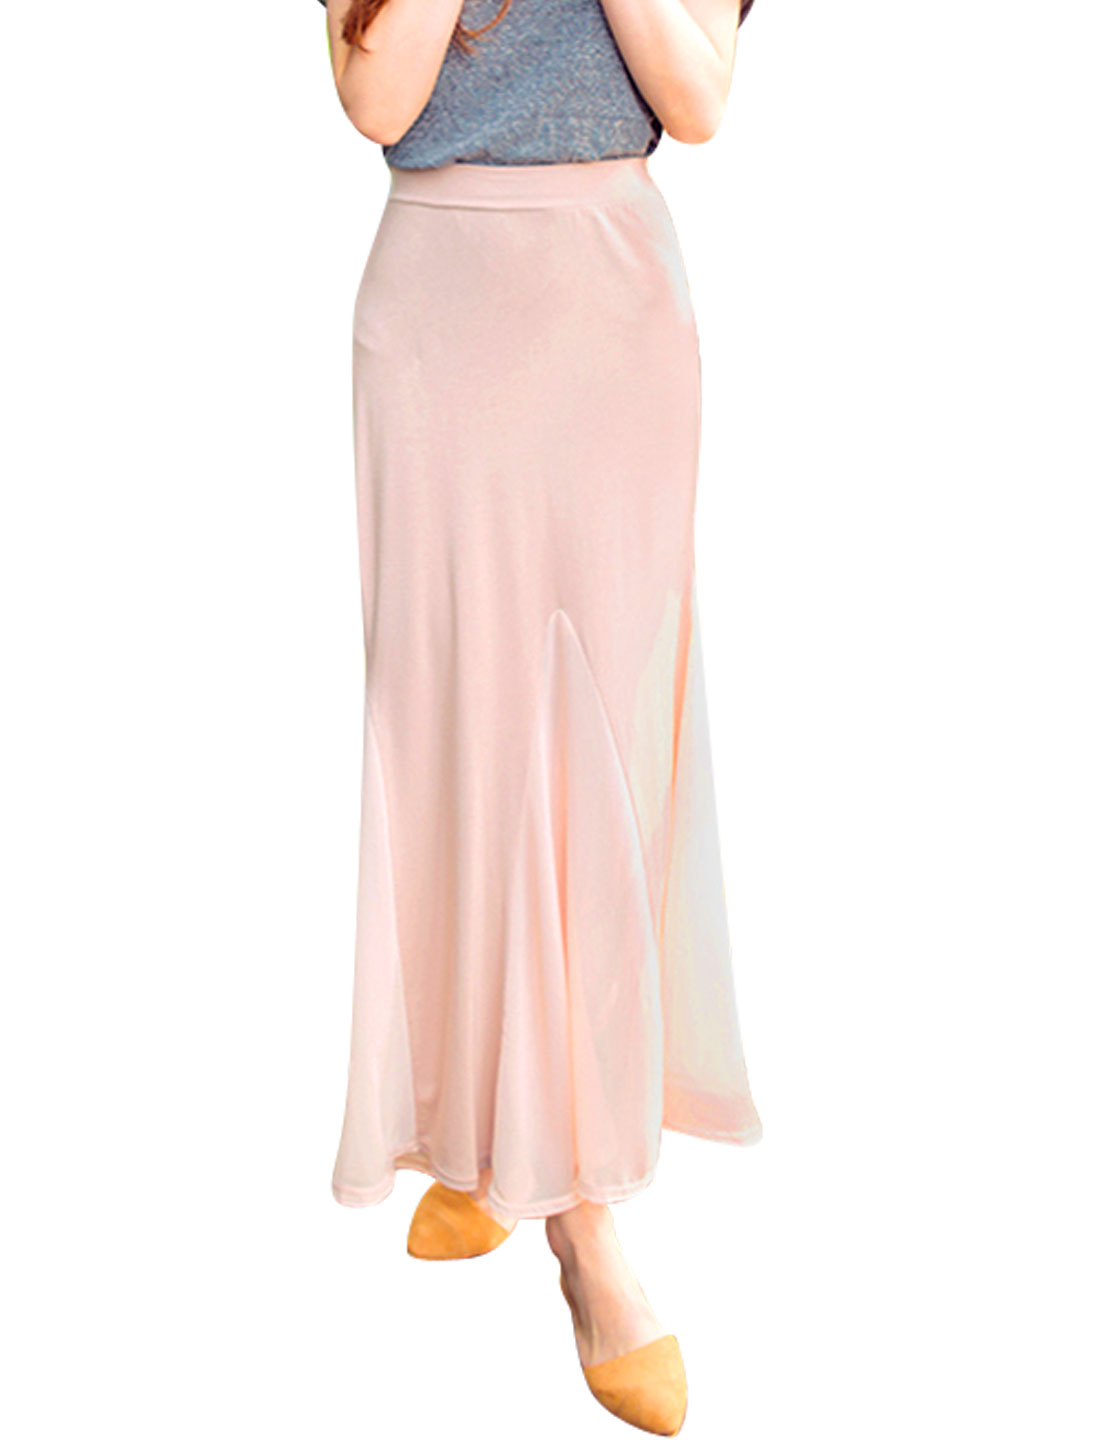 Ladies Elastic Waisted Unlined Panel Design Long Skirts Pale Pink S